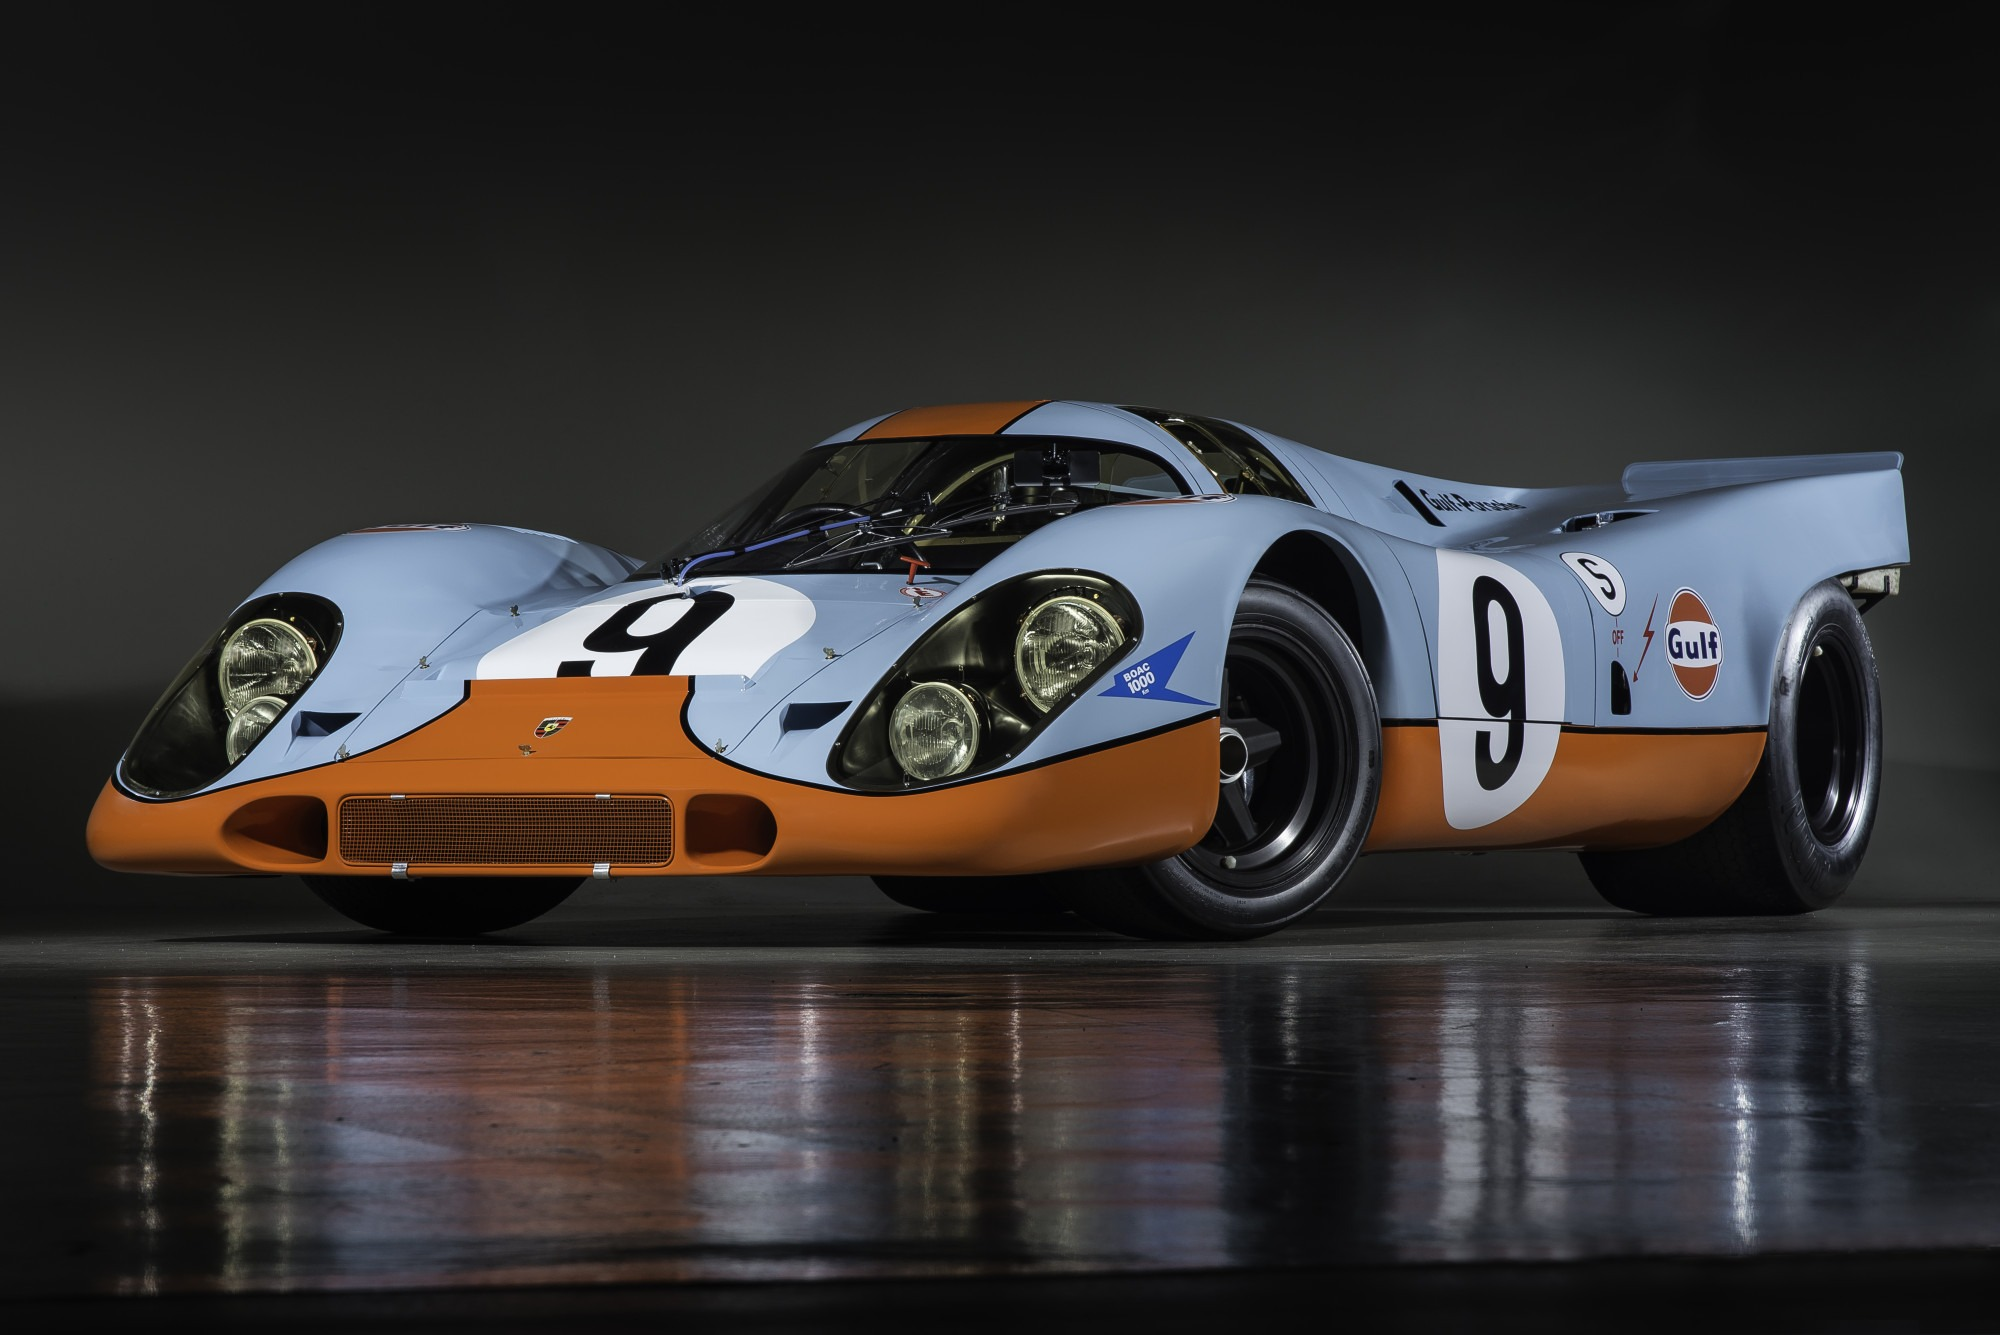 Concours D Elegance >> Canepa Porsche 917K wins Best of Show at Monticello Art in Motion | Canepa